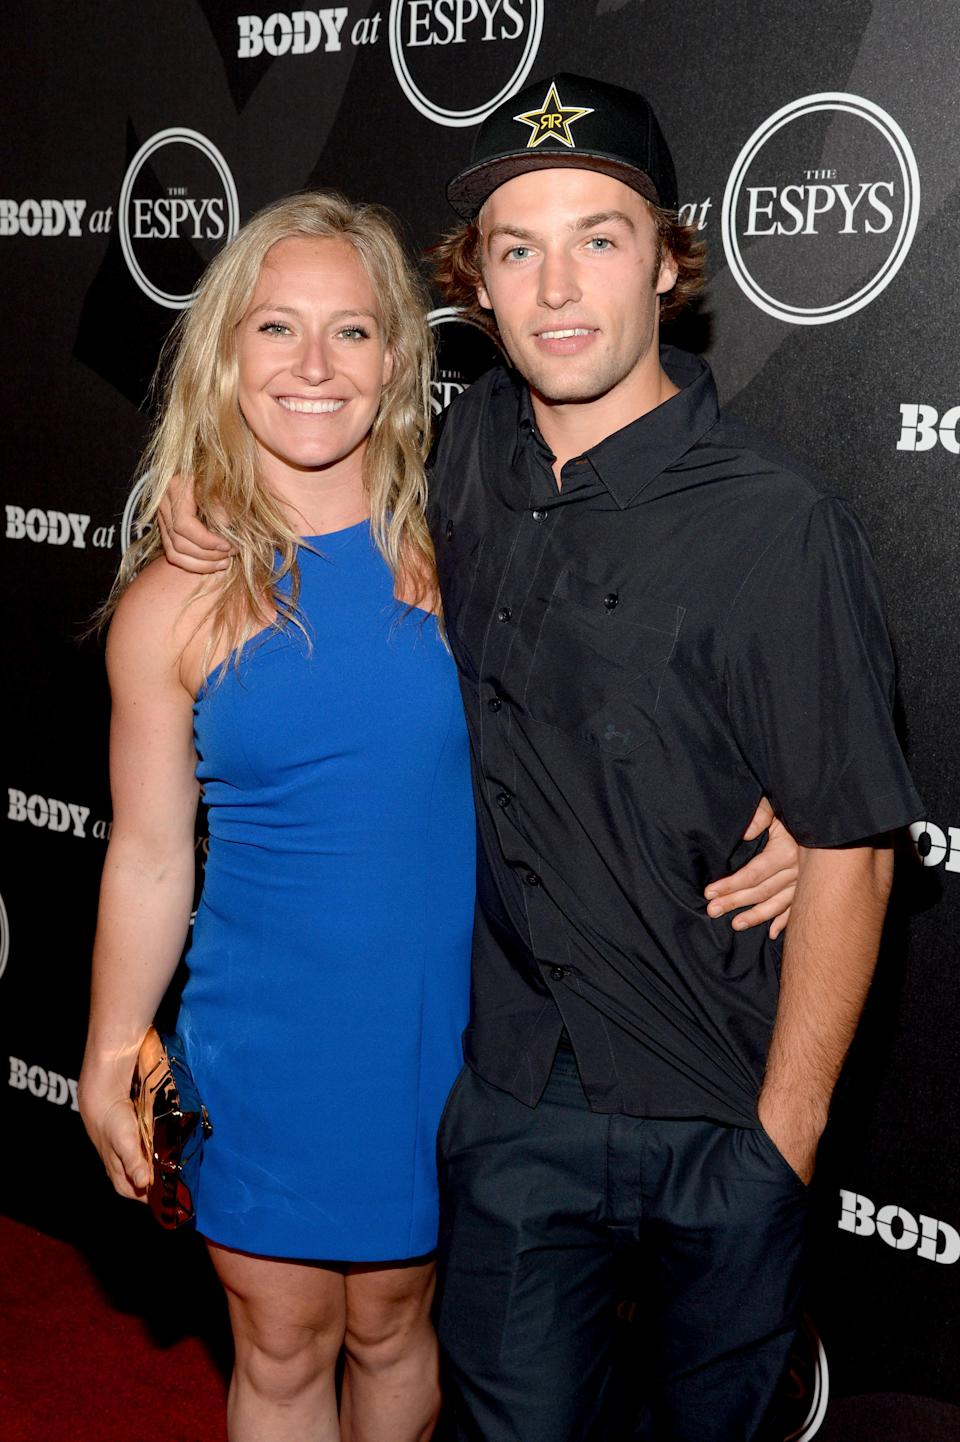 <p>American snowboarding couple, Jamie Anderson and Tyler Nicholson met in a Canadian bar five years ago and recently celebrated their three-year anniversary as a couple. Both are representing Team USA in PyeongChang and Anderson just won her second Olympic gold medal, in women's slopestyle. (Getty) </p>